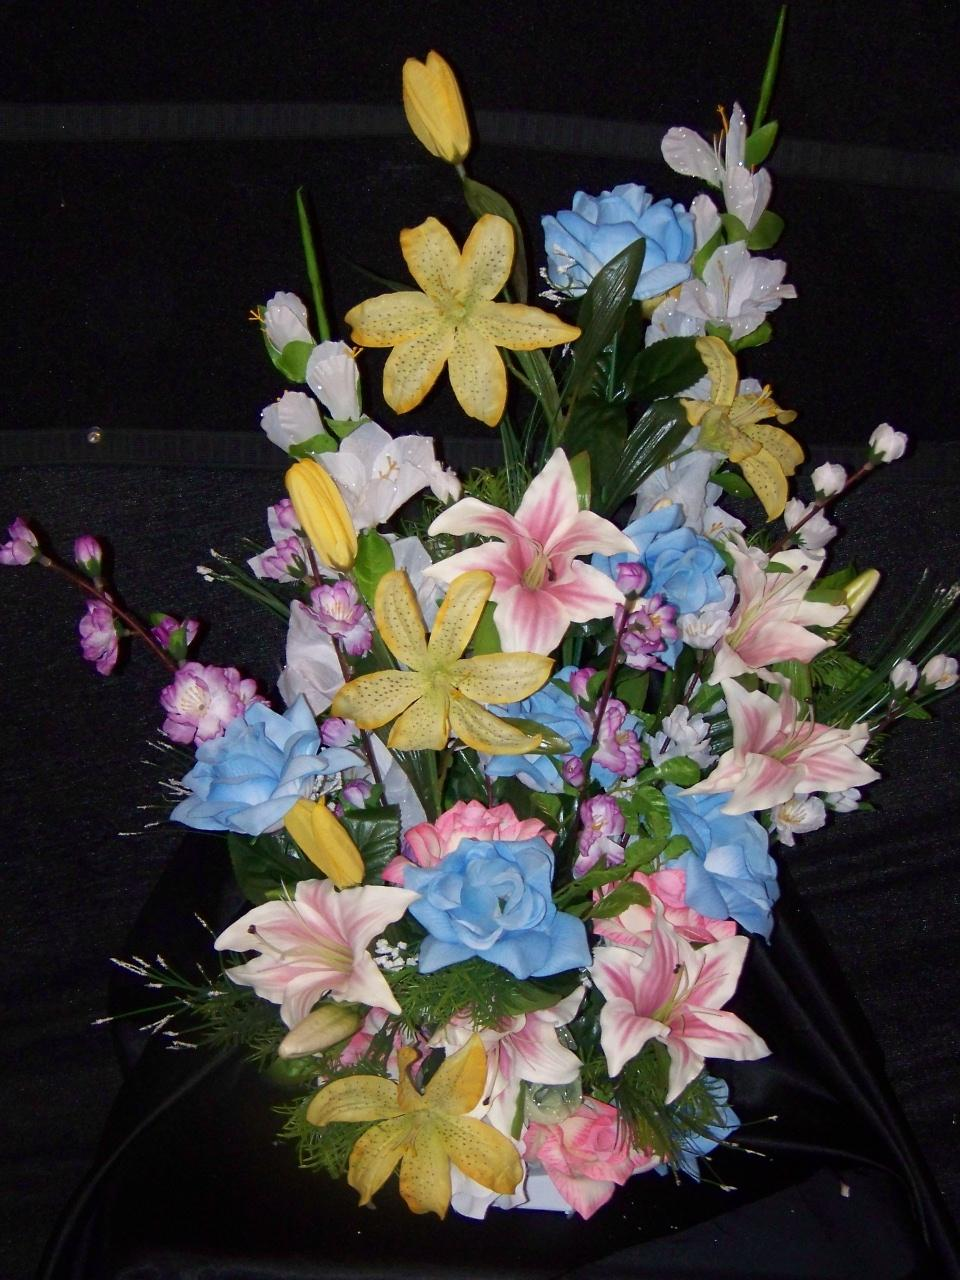 Medium Table arrangement- This